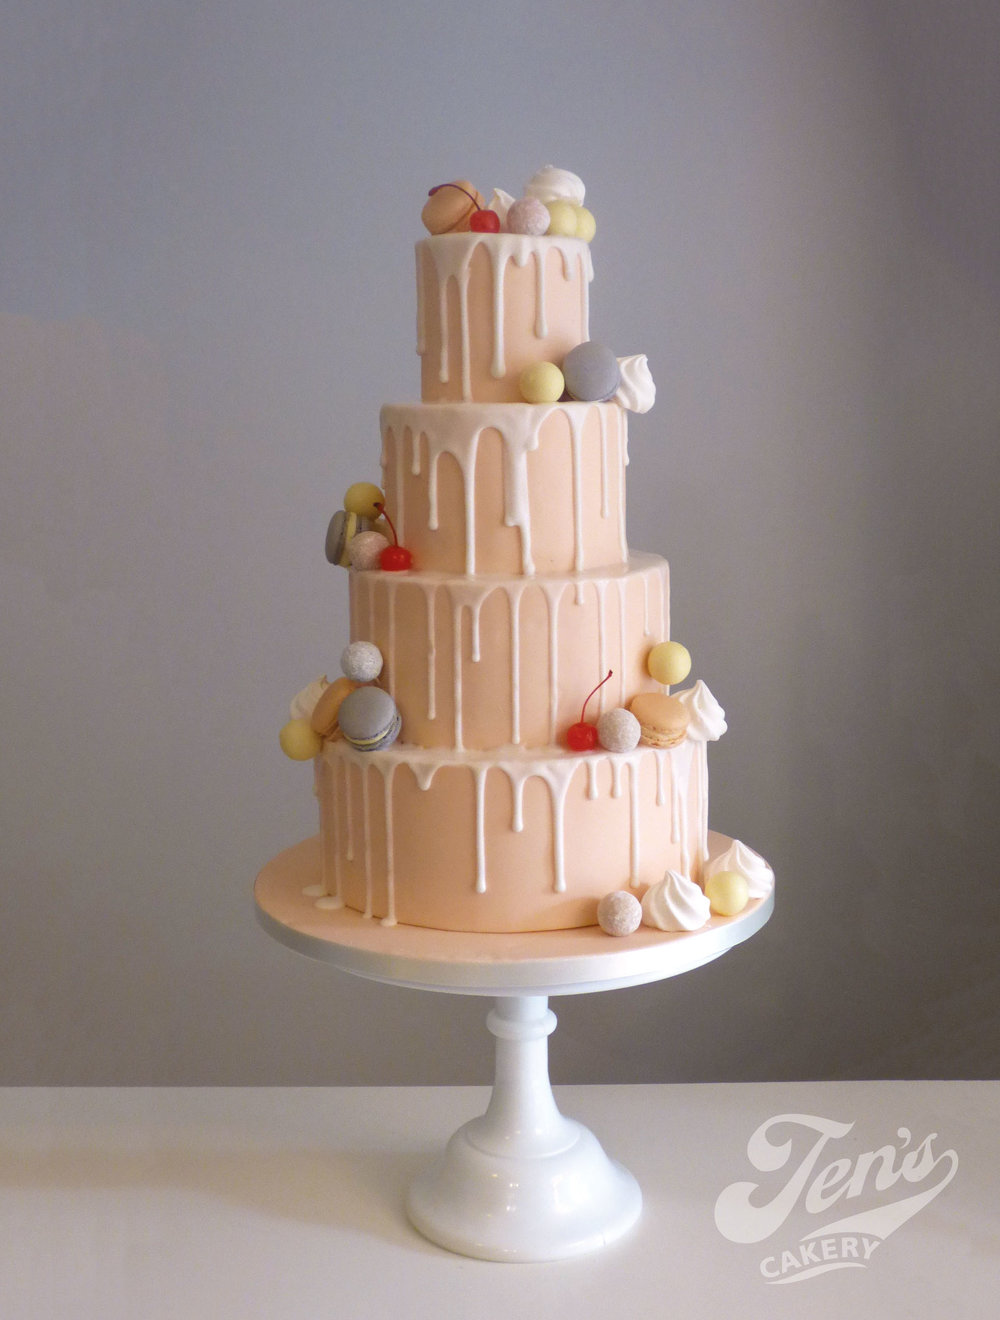 Blush peach drip wedding cake with white icing drizzles, meringues and truffles.